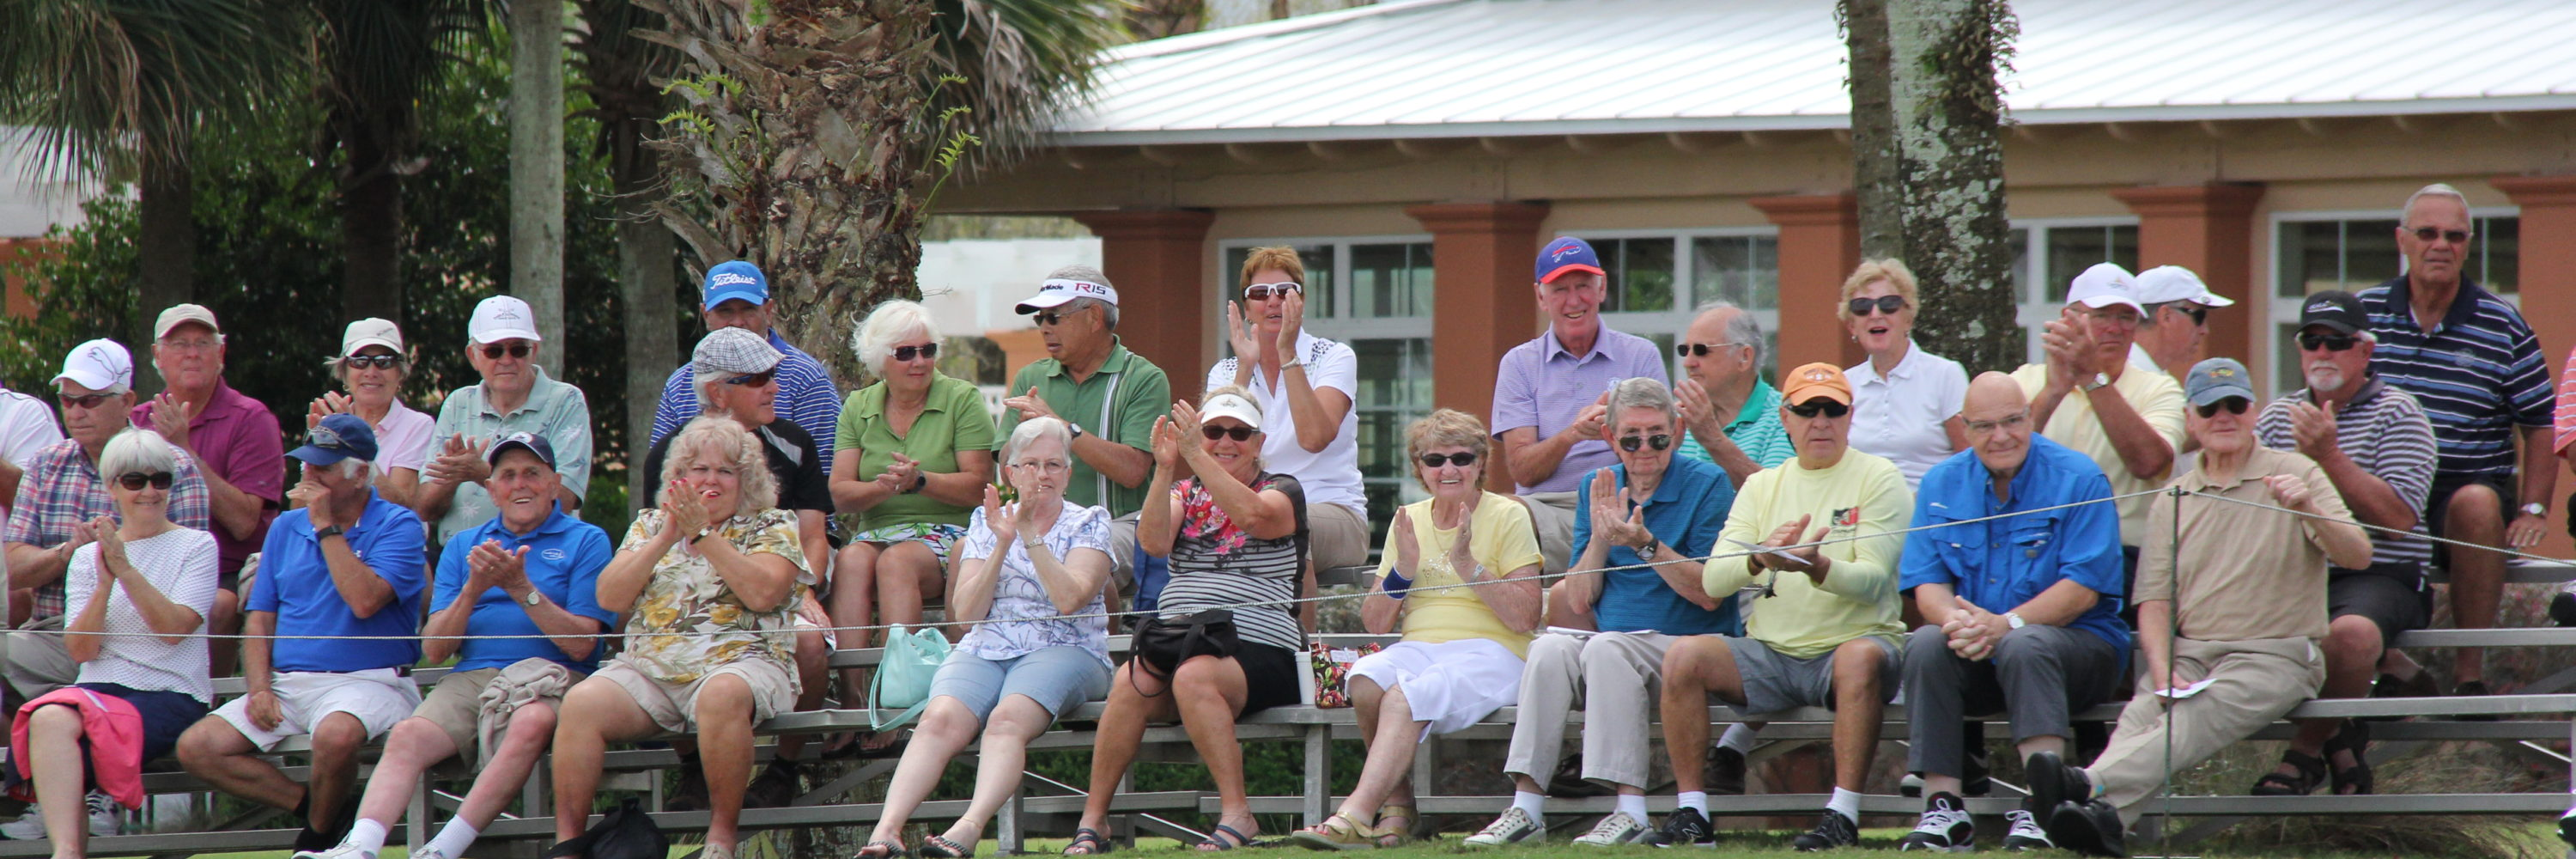 Spectators enjoying the Ocala Open at Candler Hills Golf Course